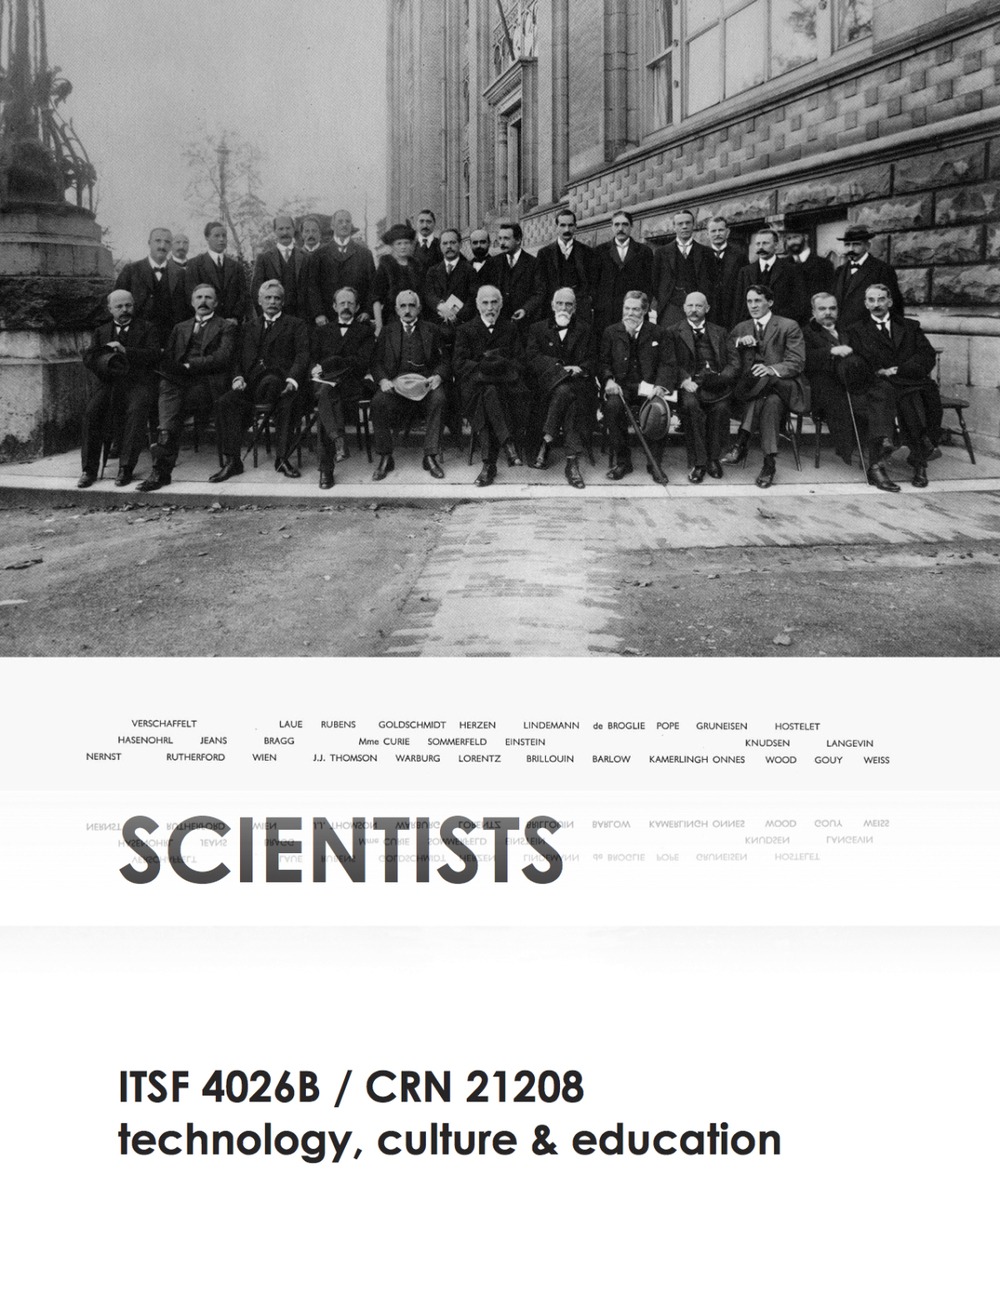 itsf 4026b flyers - scientists.jpg